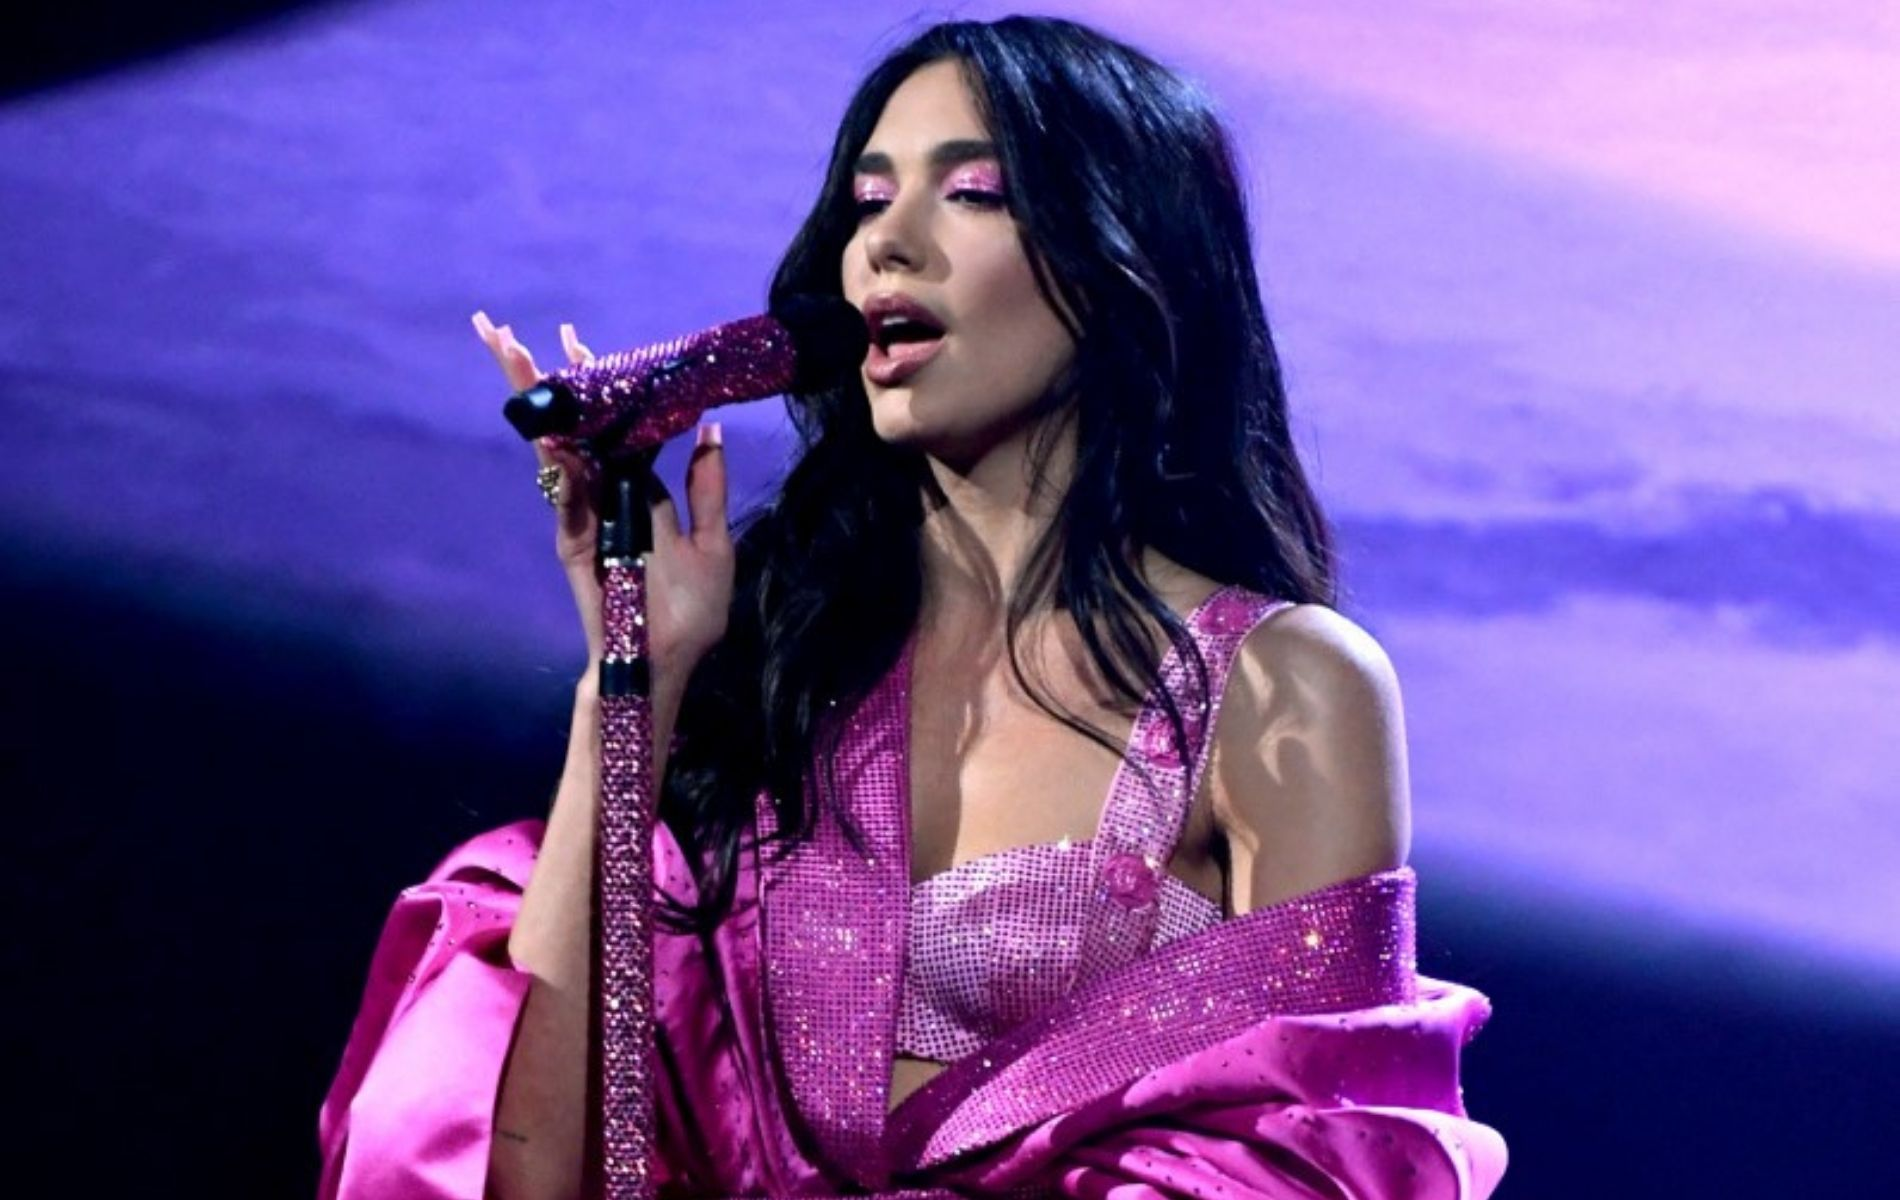 Dua Lipa performing at the Grammys 2021 (AFP Photo / Kevin Winter / The Recording Academy via Getty Images)